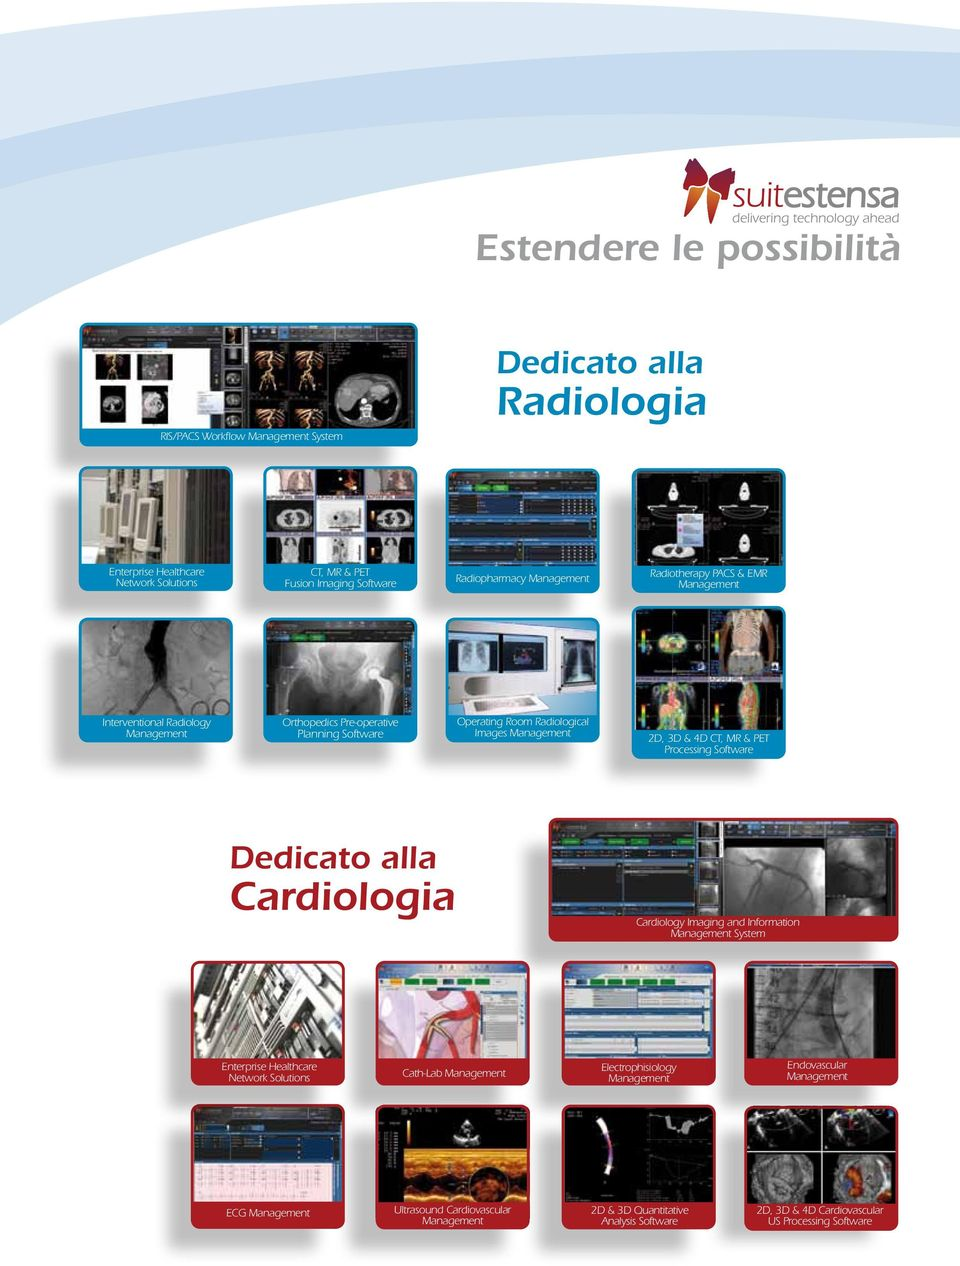 4D CT, MR & PET Processing Software Dedicato alla Cardiologia Cardiology Imaging and Information Management System Enterprise Healthcare Network Solutions Cath-Lab Management